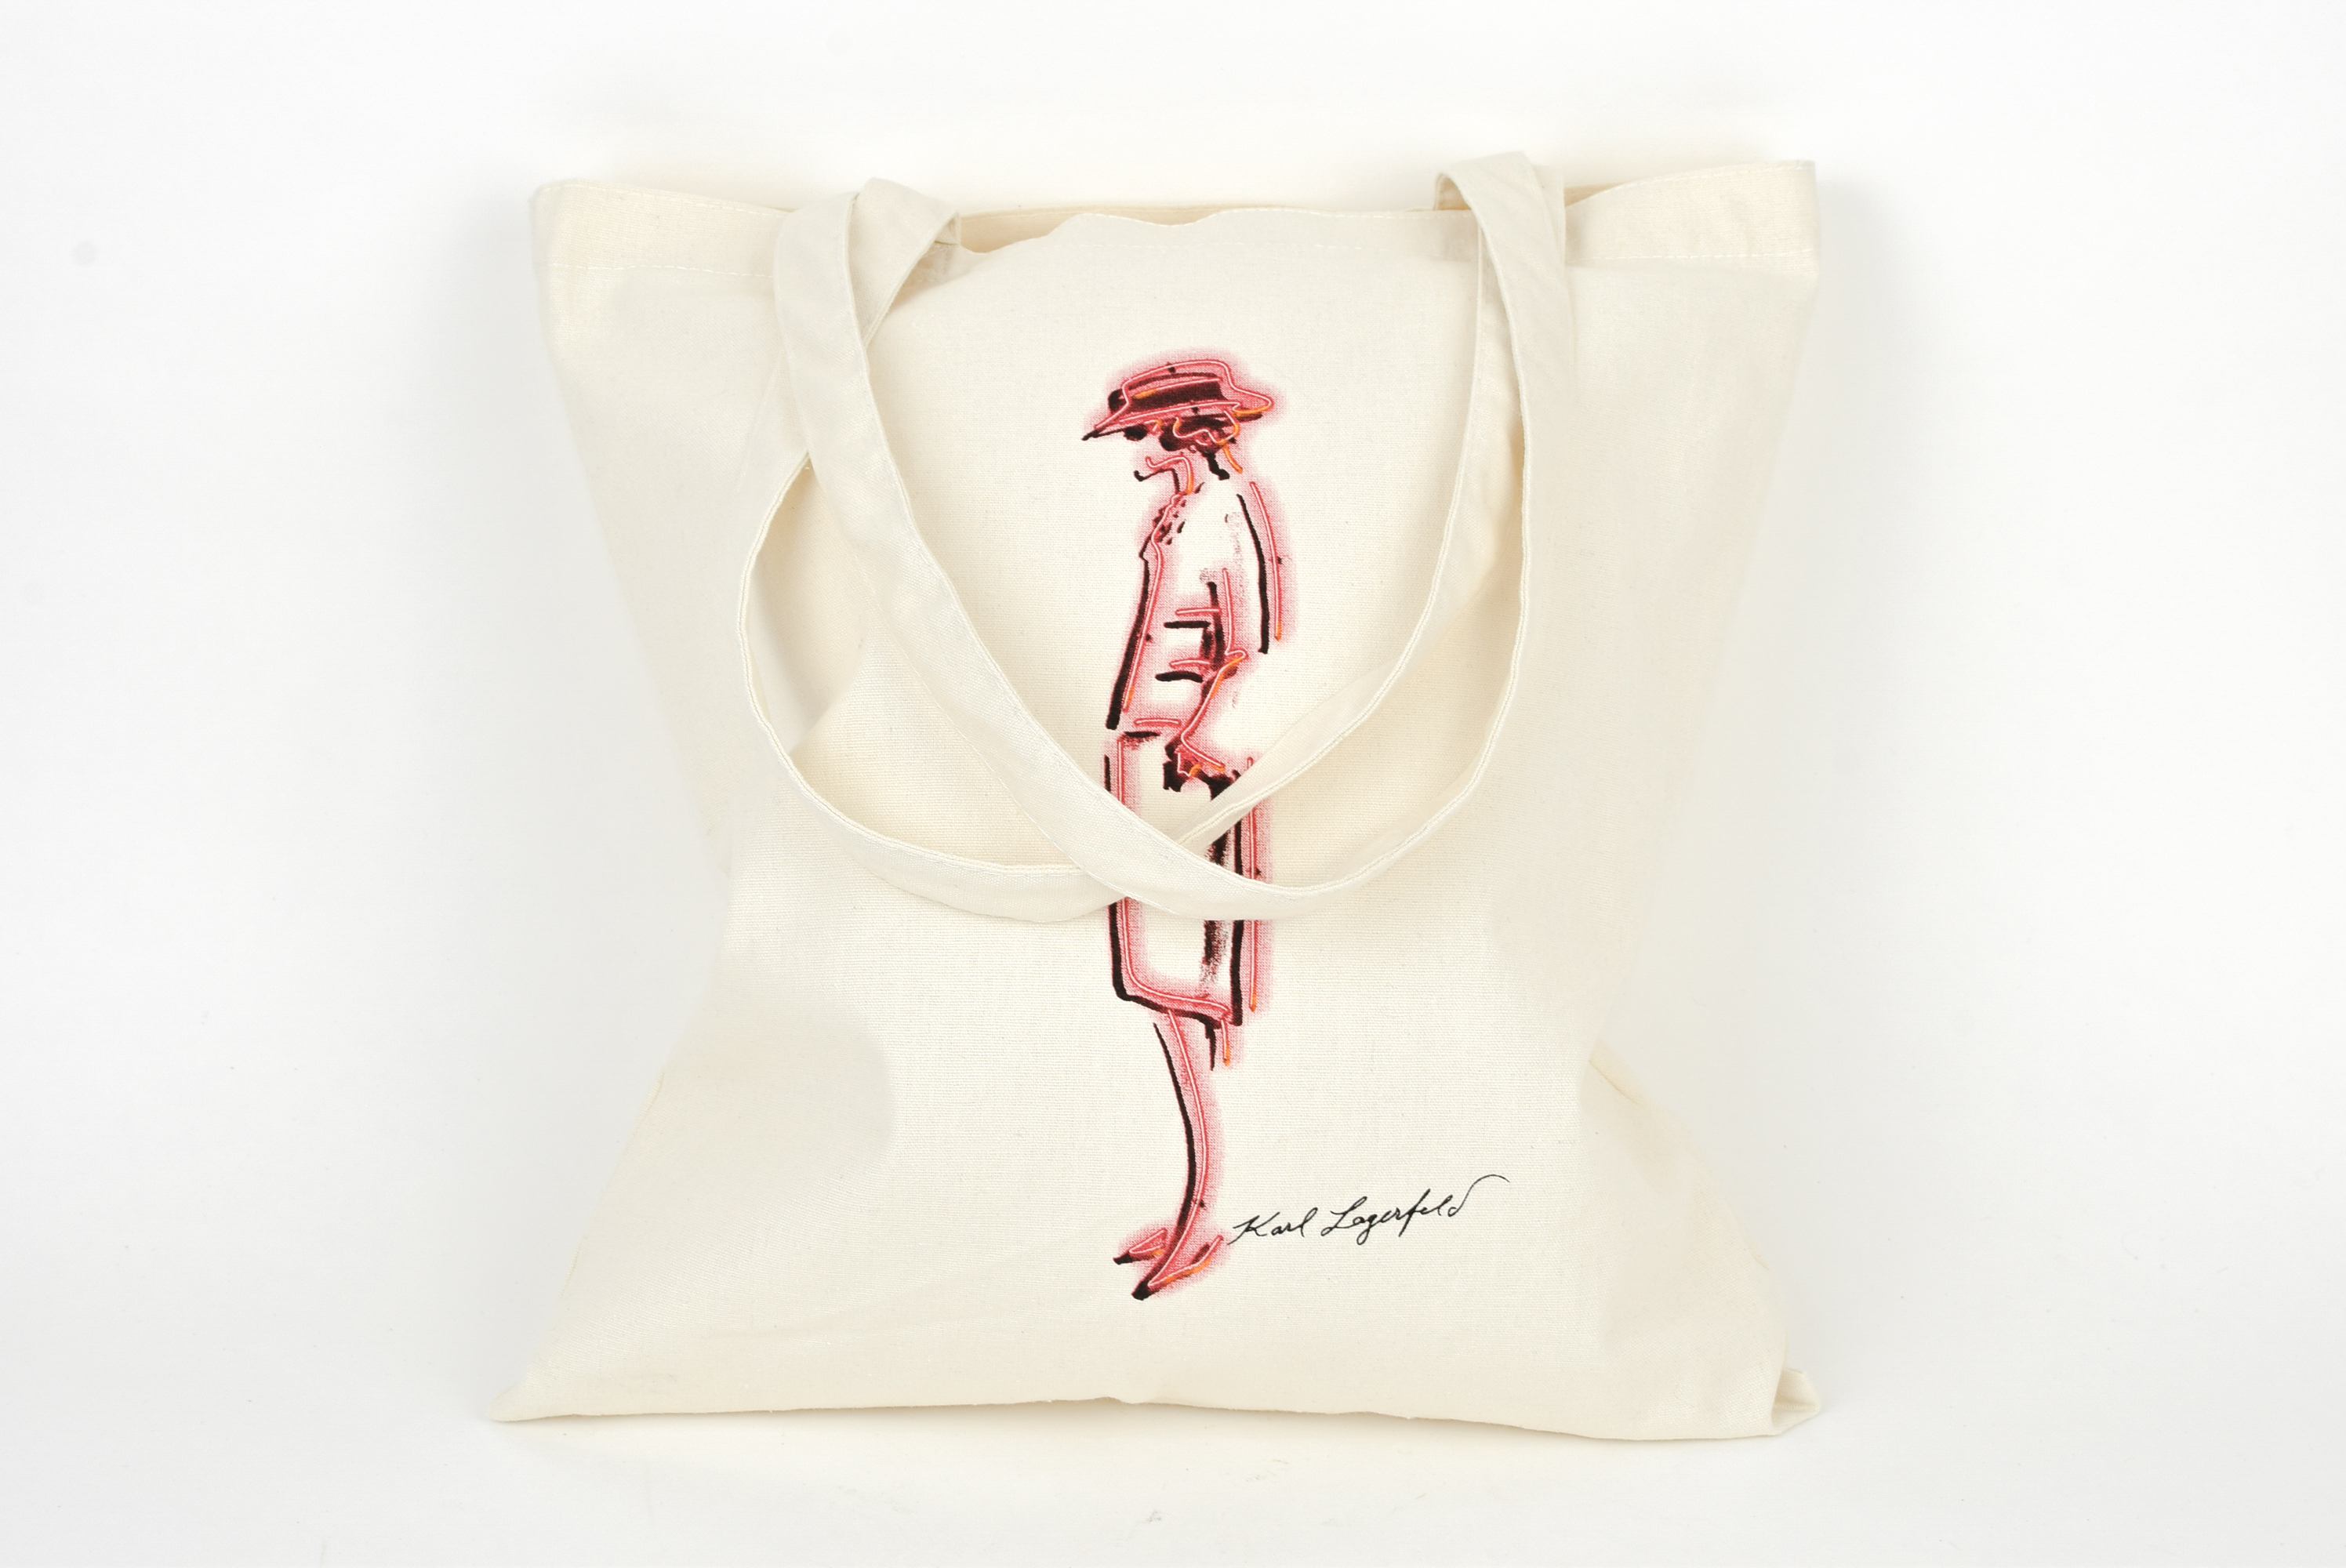 8ae5c29029d Chanel ×. NEW CHANEL Mademoiselle Prive Karl Lagerfeld Bag Canvas Tote Hong  Kong ...